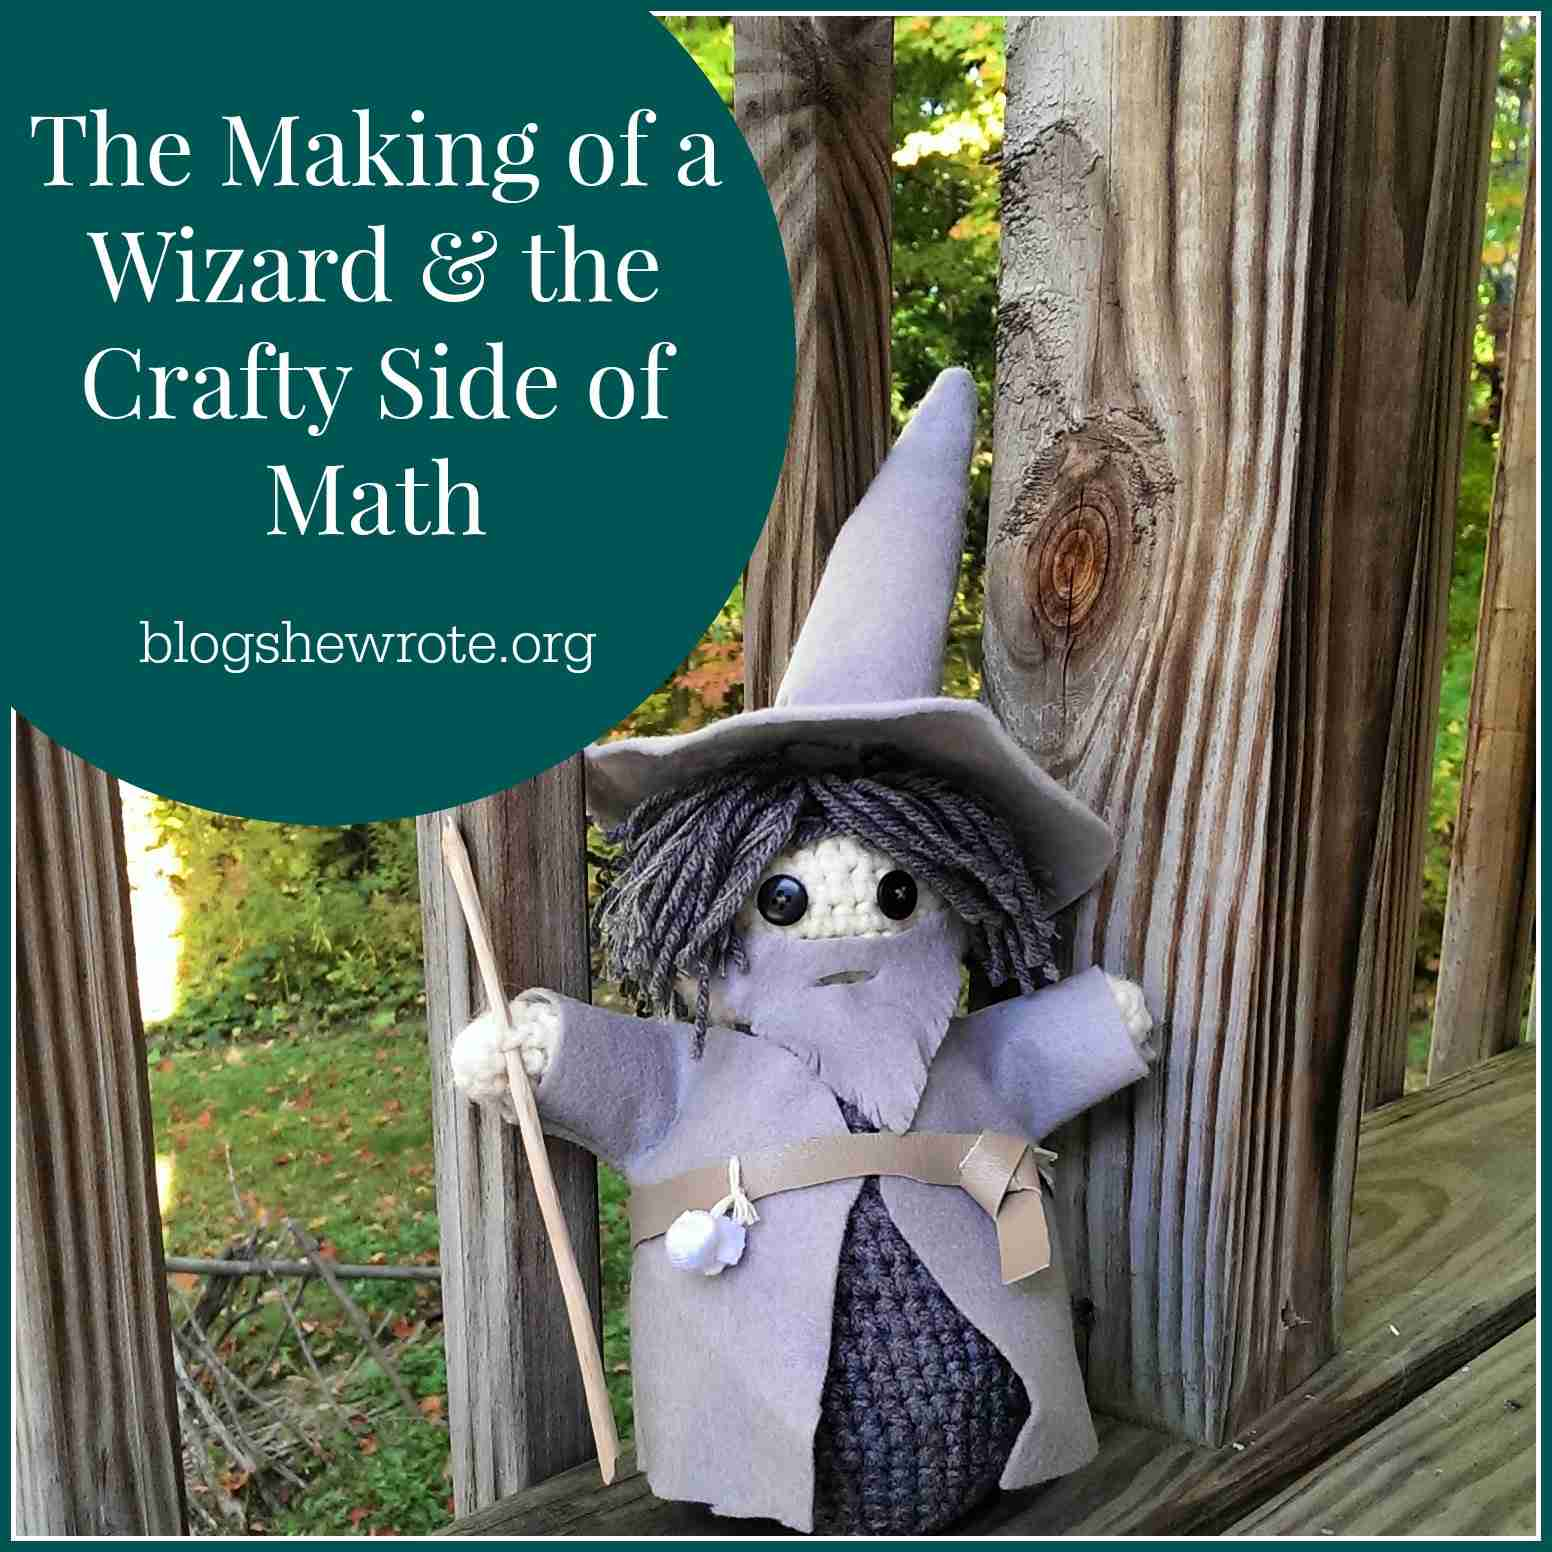 Blog, She Wrote: The Making of a Wizard & the Crafty Side of Math